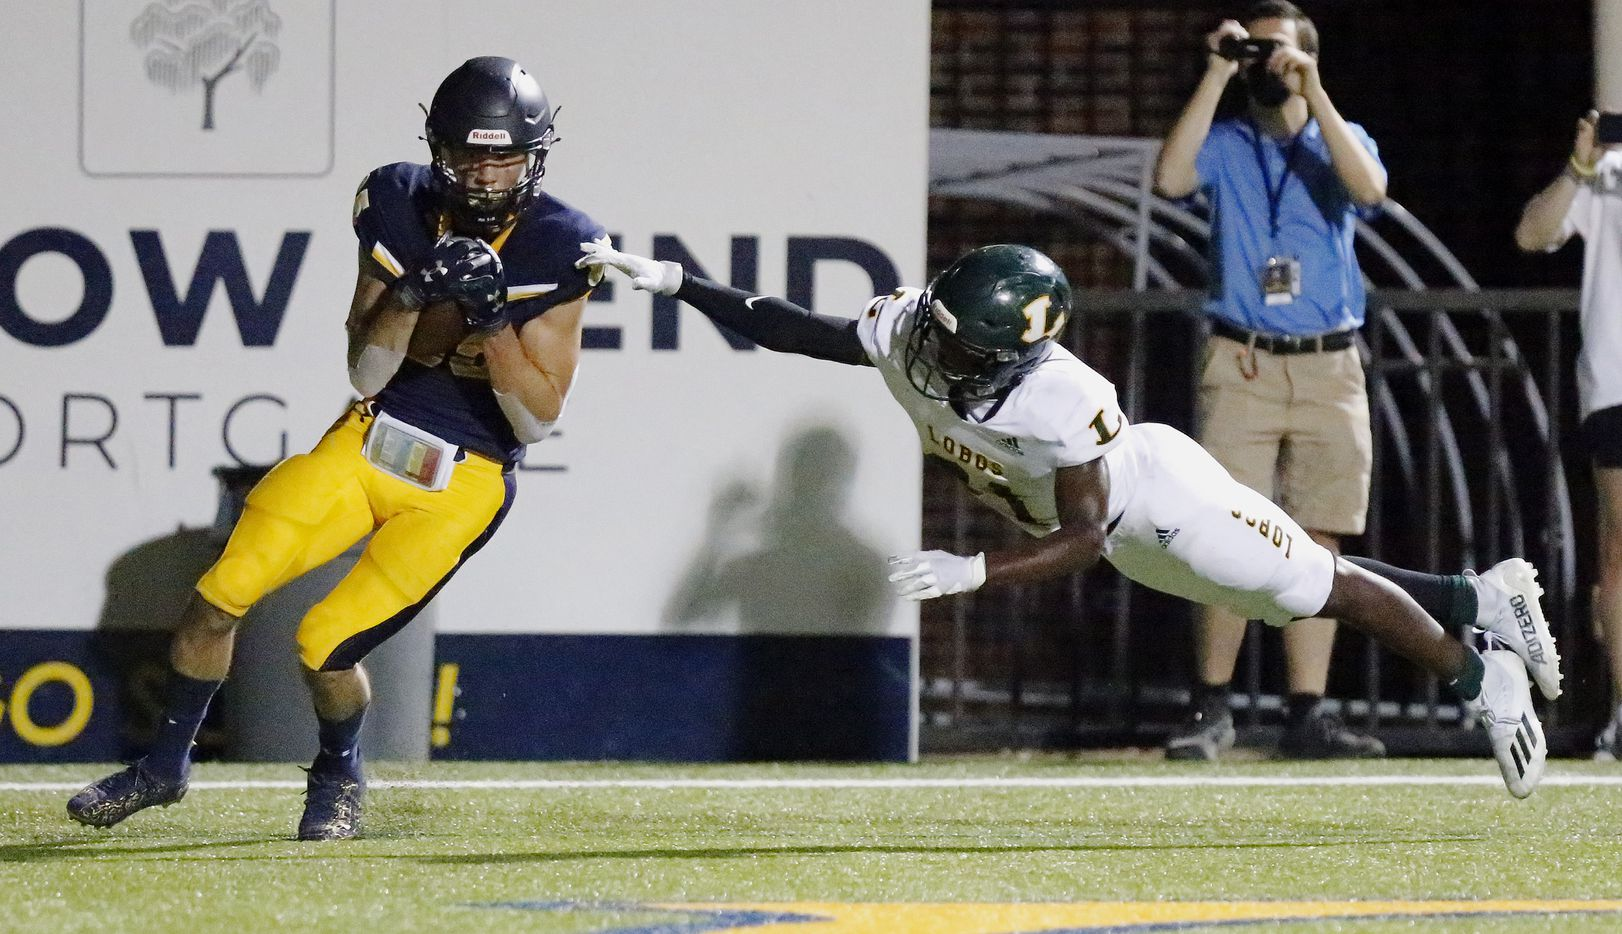 Highland Park High School wide receiver Jackson Heis (85) catches a touchdown pass behind Longview High School defensive back Chase Smith (21) during the second half as Highland Park High School hosted Longview High School at Highlander Stadium in Dallas on Friday night, October 8, 2021. (Stewart F. House/Special Contributor)